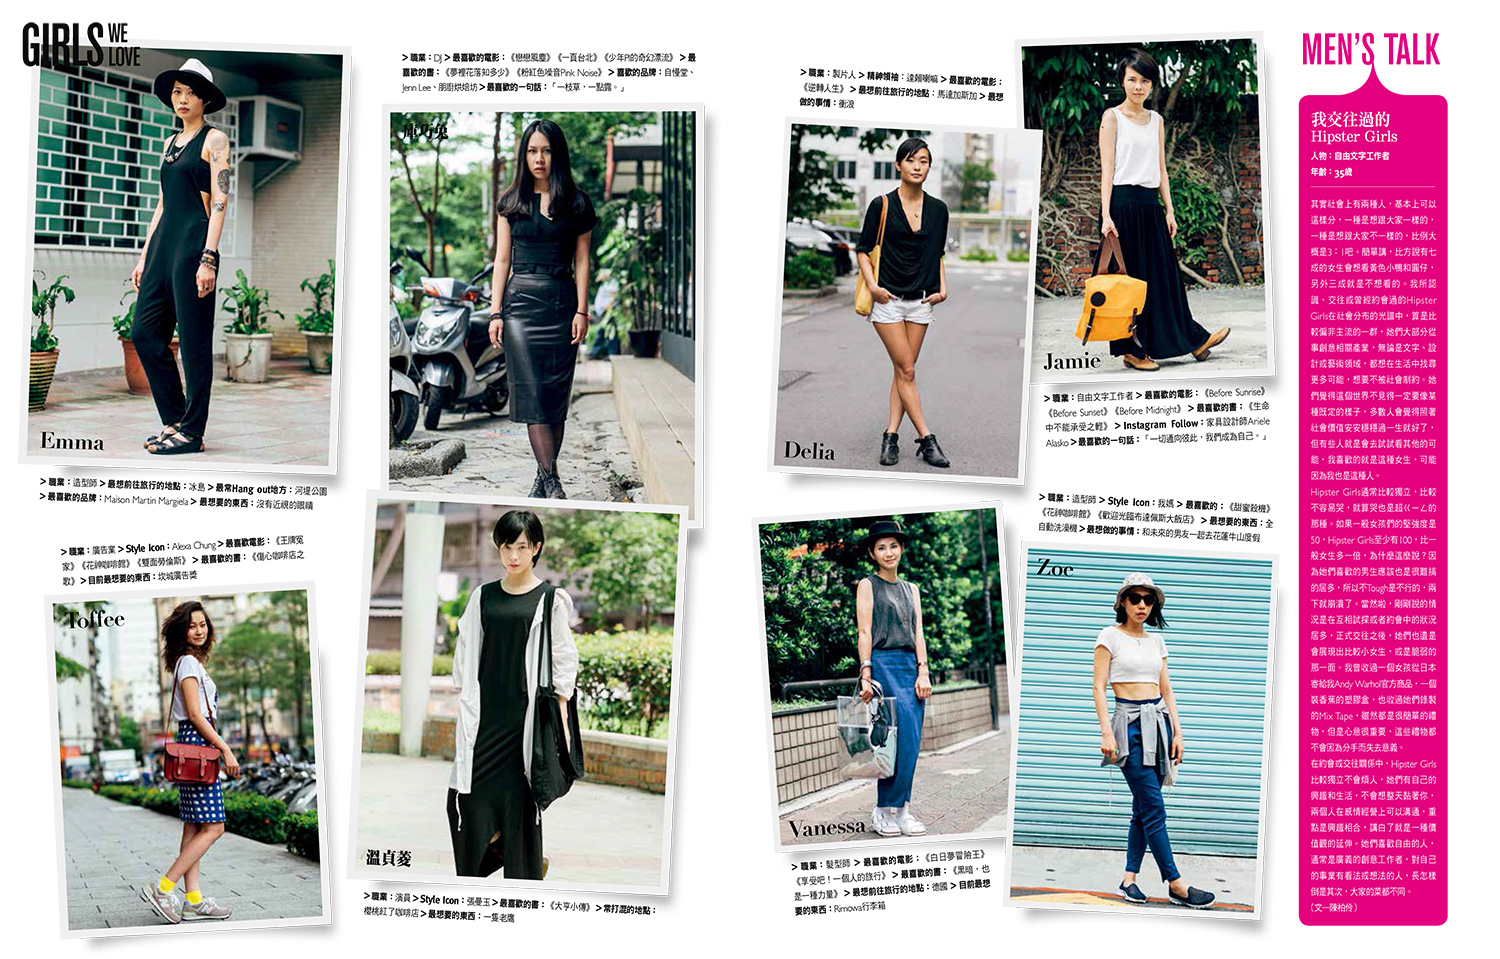 GQ Taiwan Street Fashion September 2014